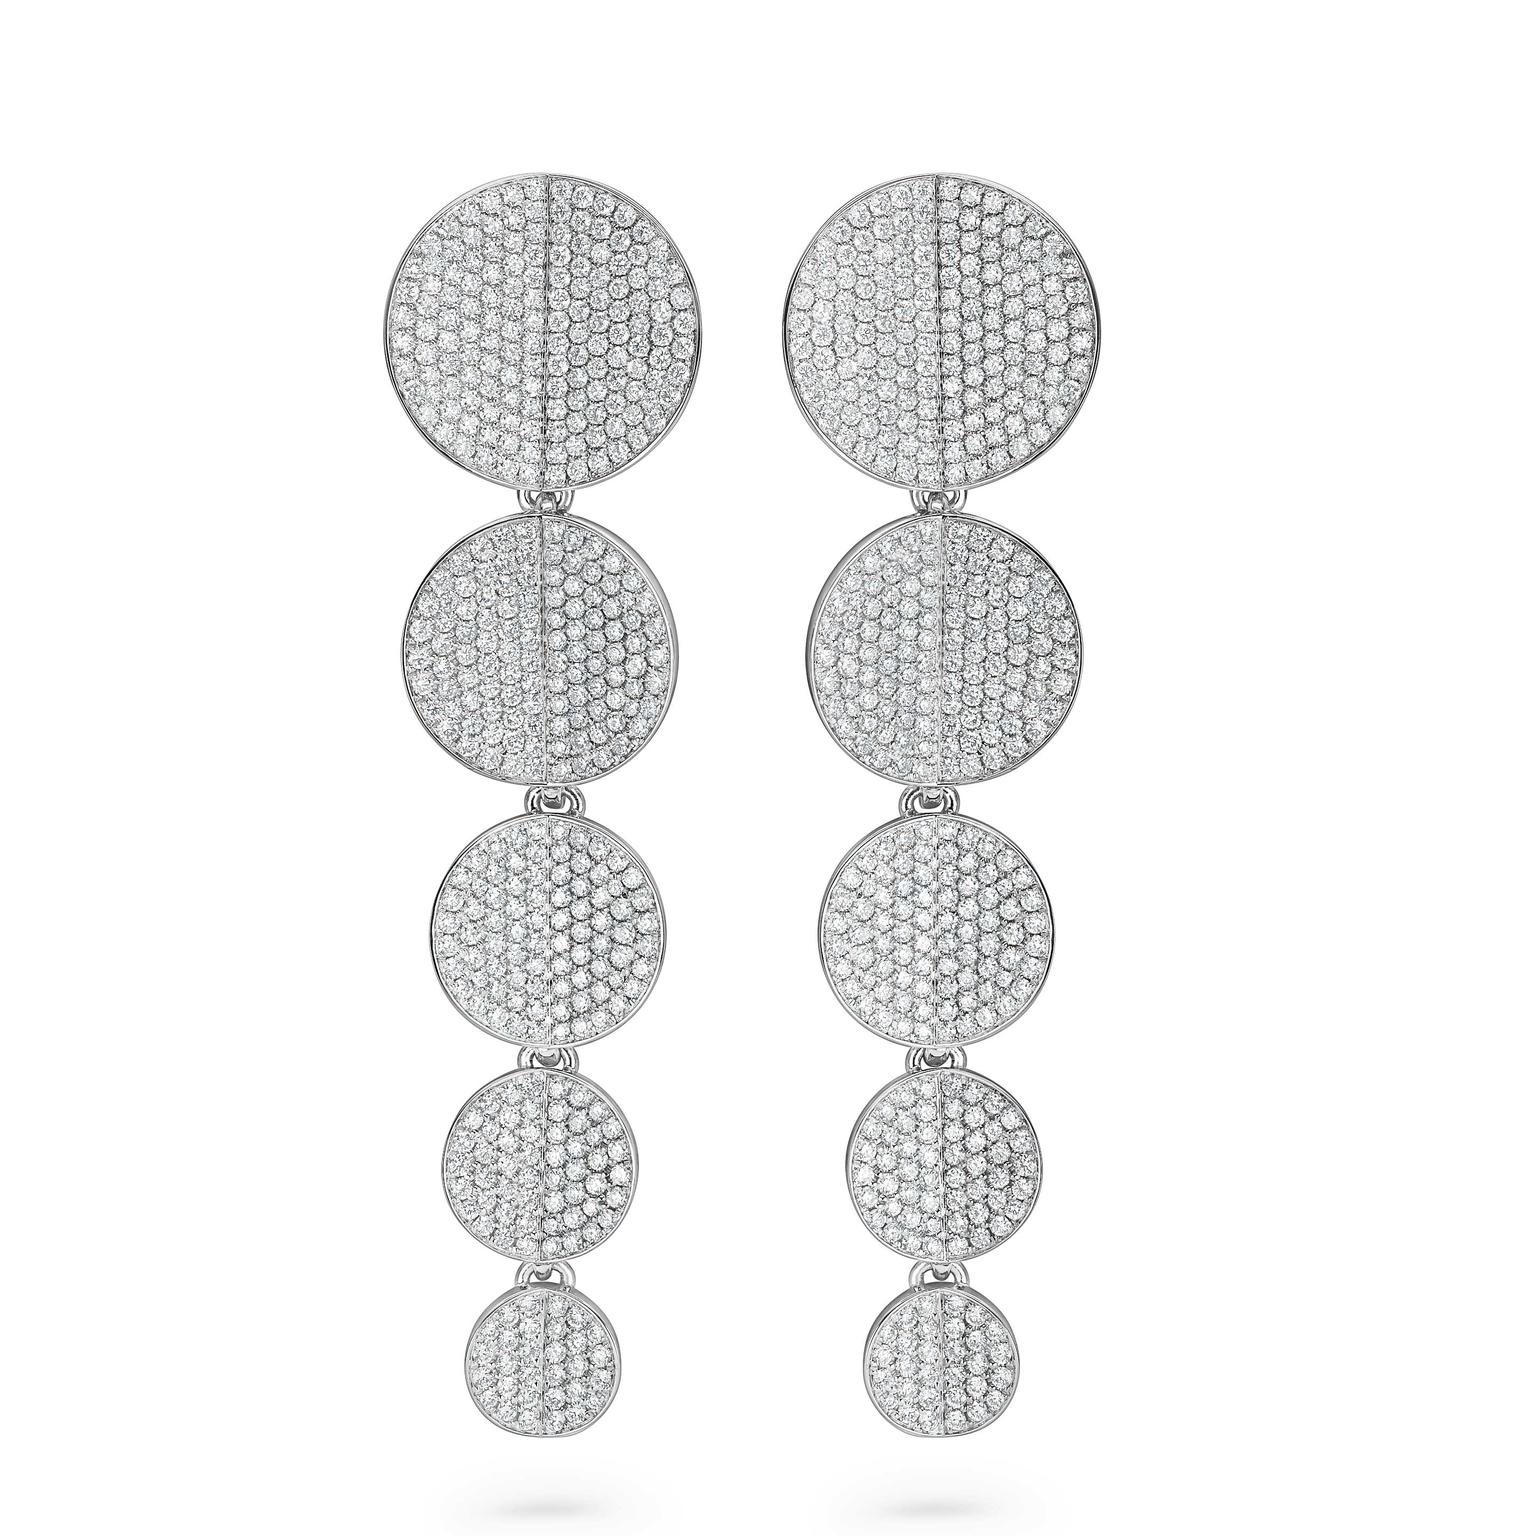 Bucherer B Dimension drop earrings with diamonds in white gold Price £14000